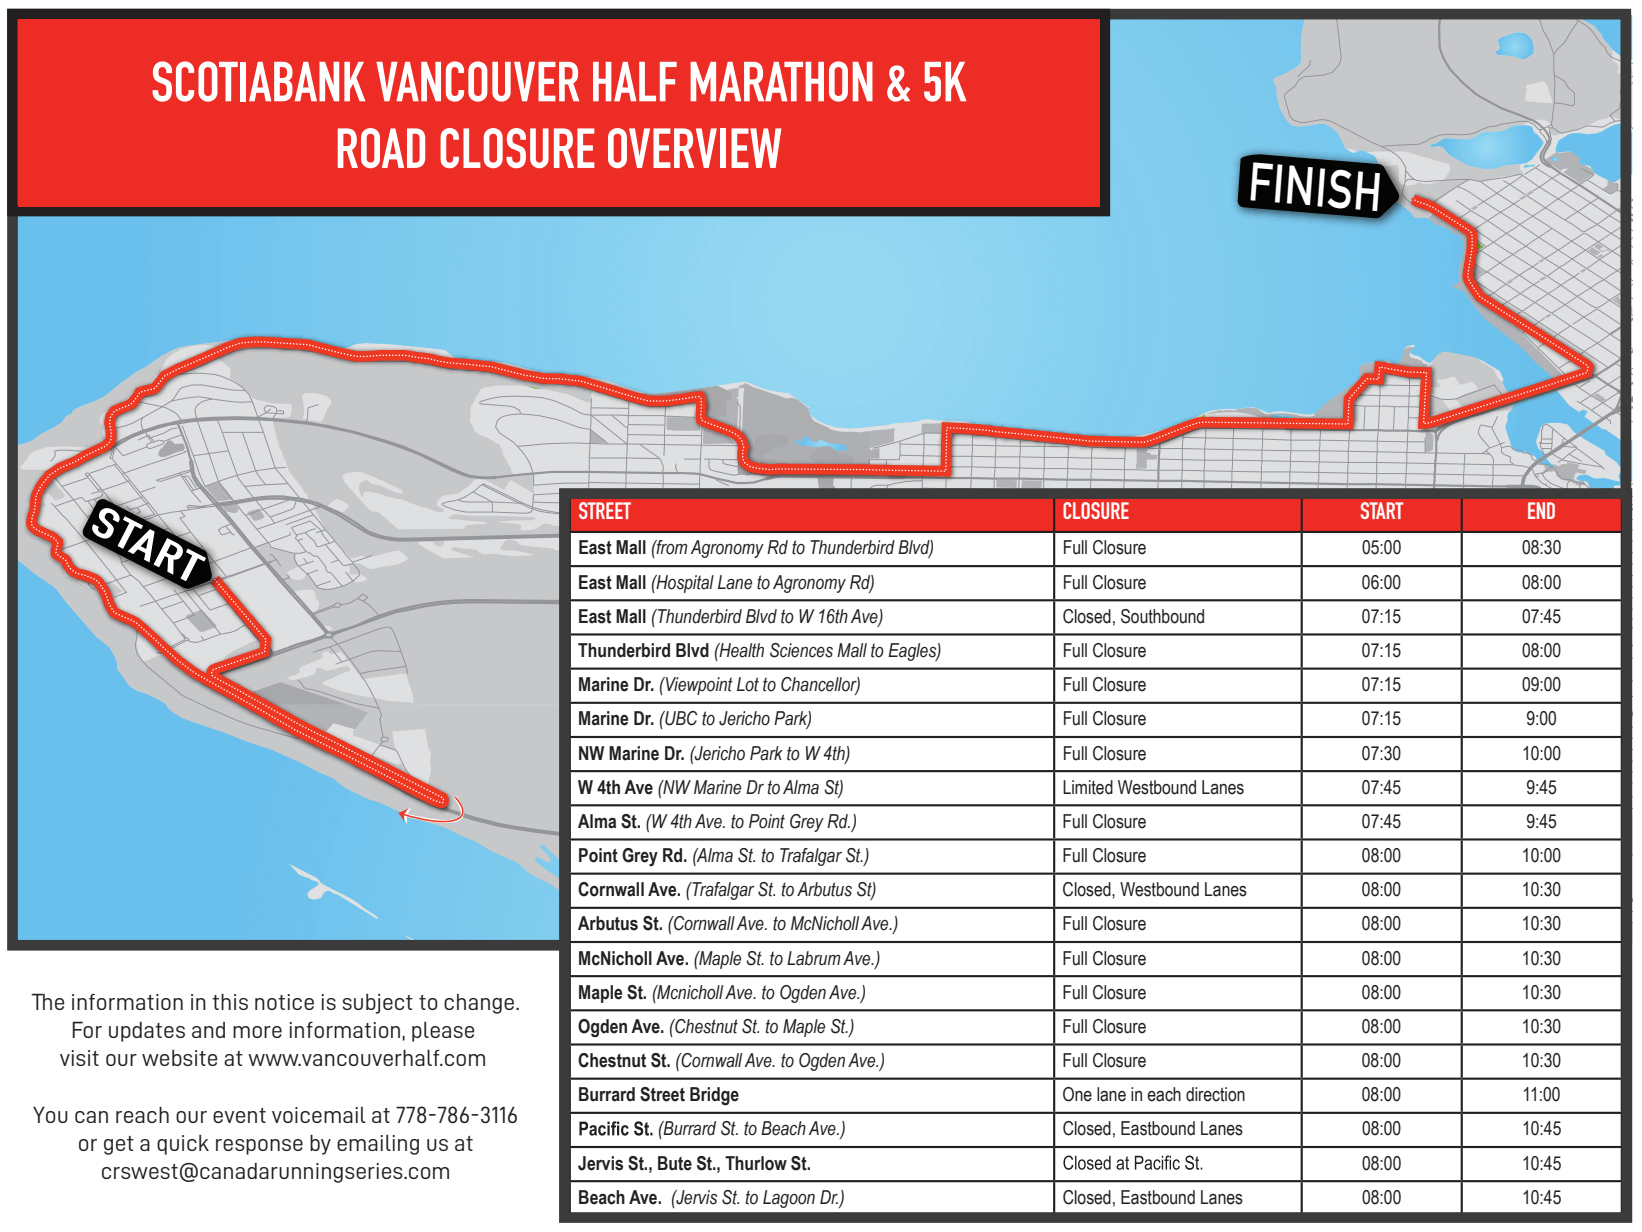 Watch for road closures as Scotiabank Vancouver Half